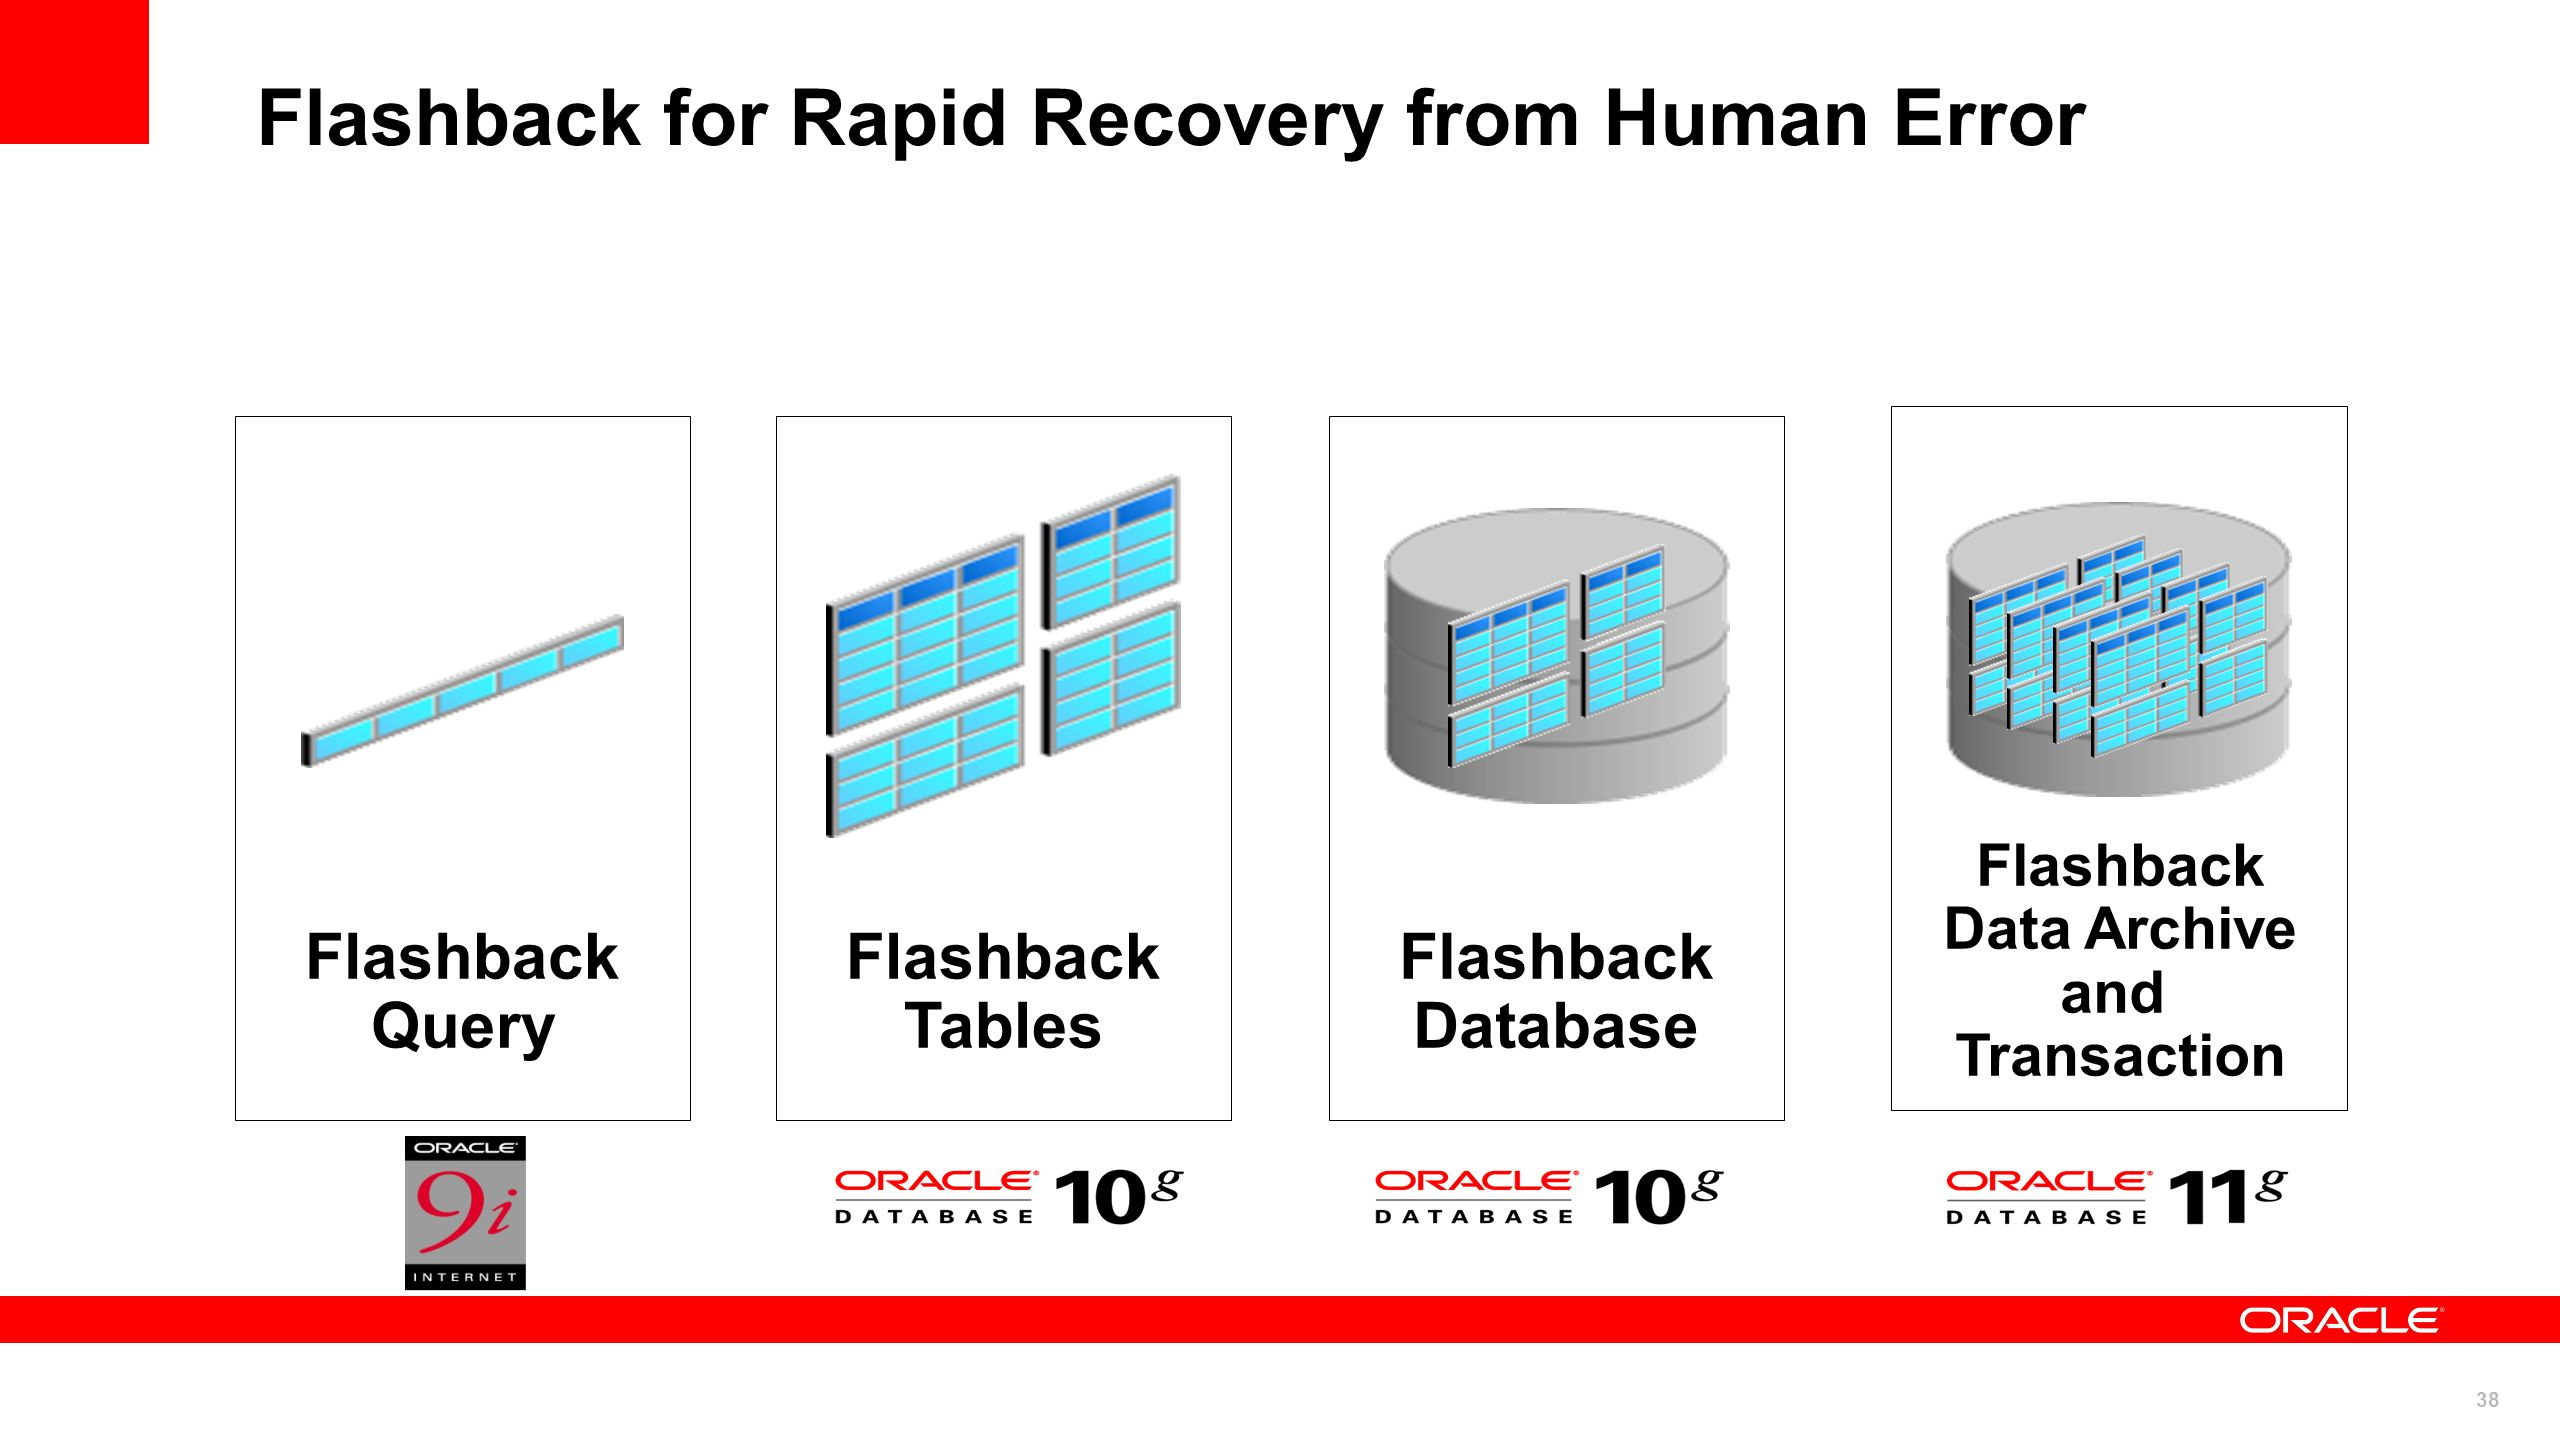 Flashback for Rapid Recovery from Human Error